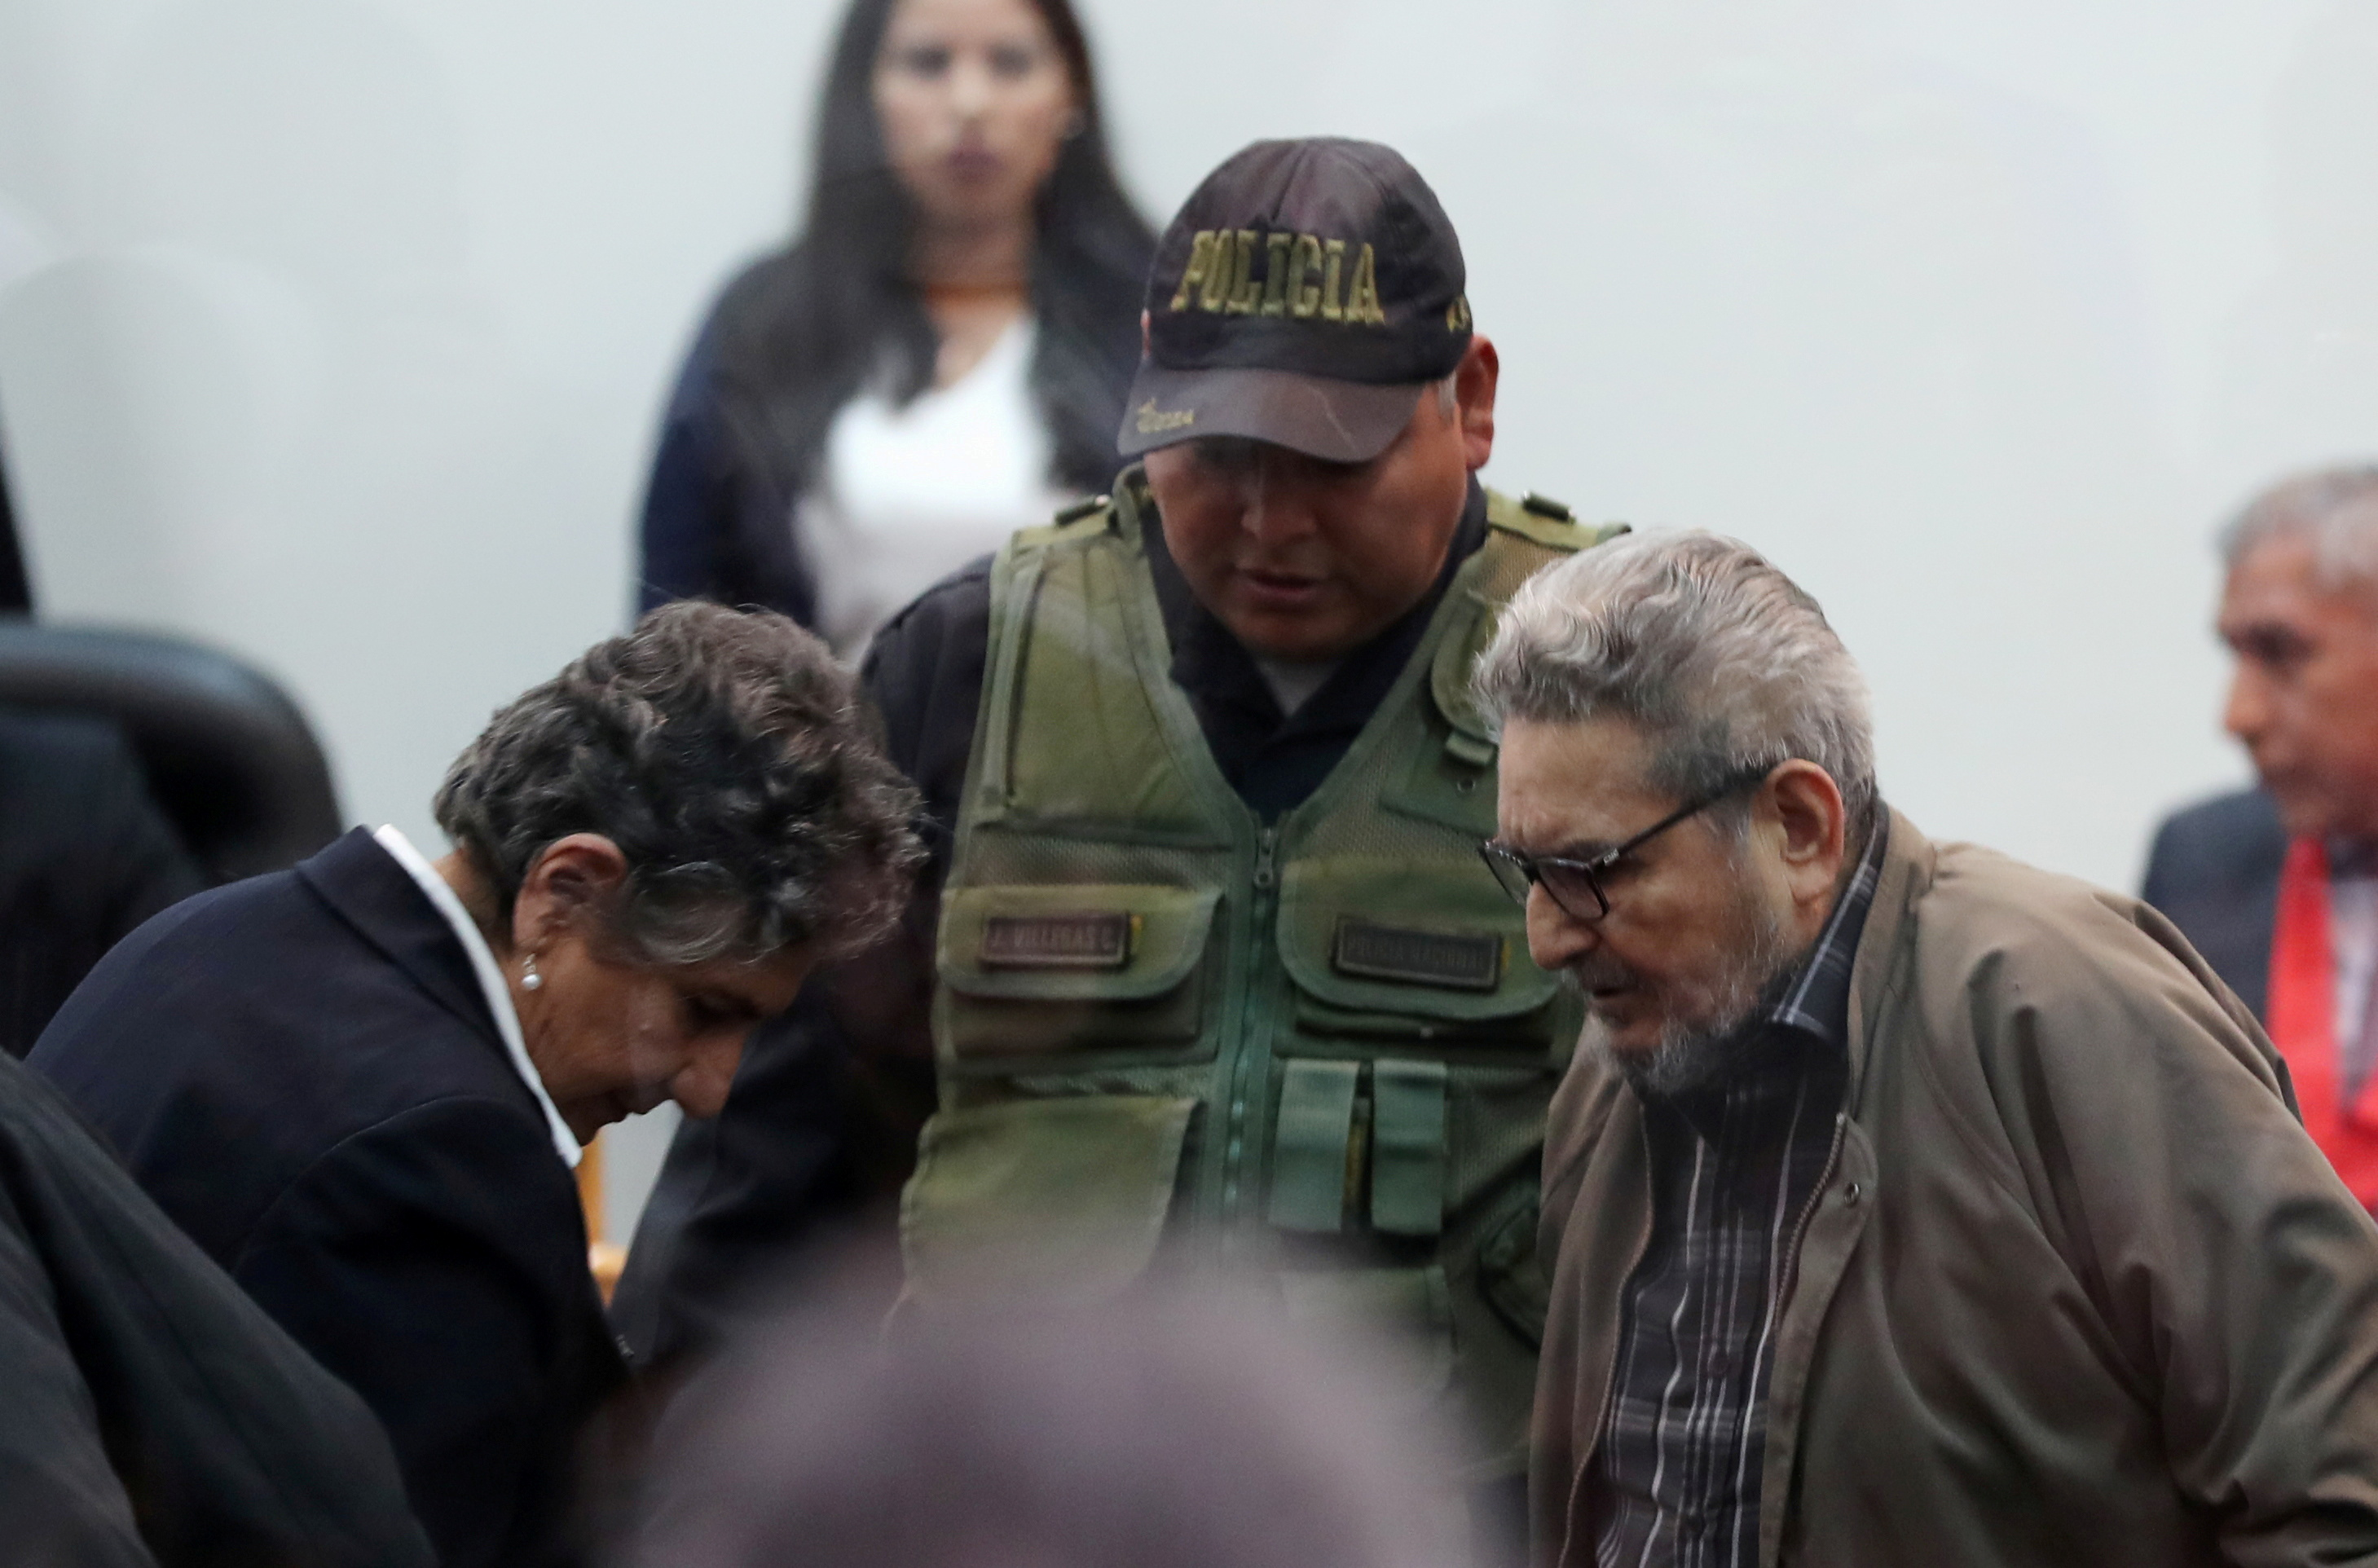 Shining Path founder Abimael Guzman and his wife and second leader Elena Iparraguirre attend a trial during sentence of a 1992 Shining Path car bomb case in Miraflores, at a high security naval prison in Callao, Peru September 11, 2018. Picture taken through a window. REUTERS/Mariana Bazo/File Photo